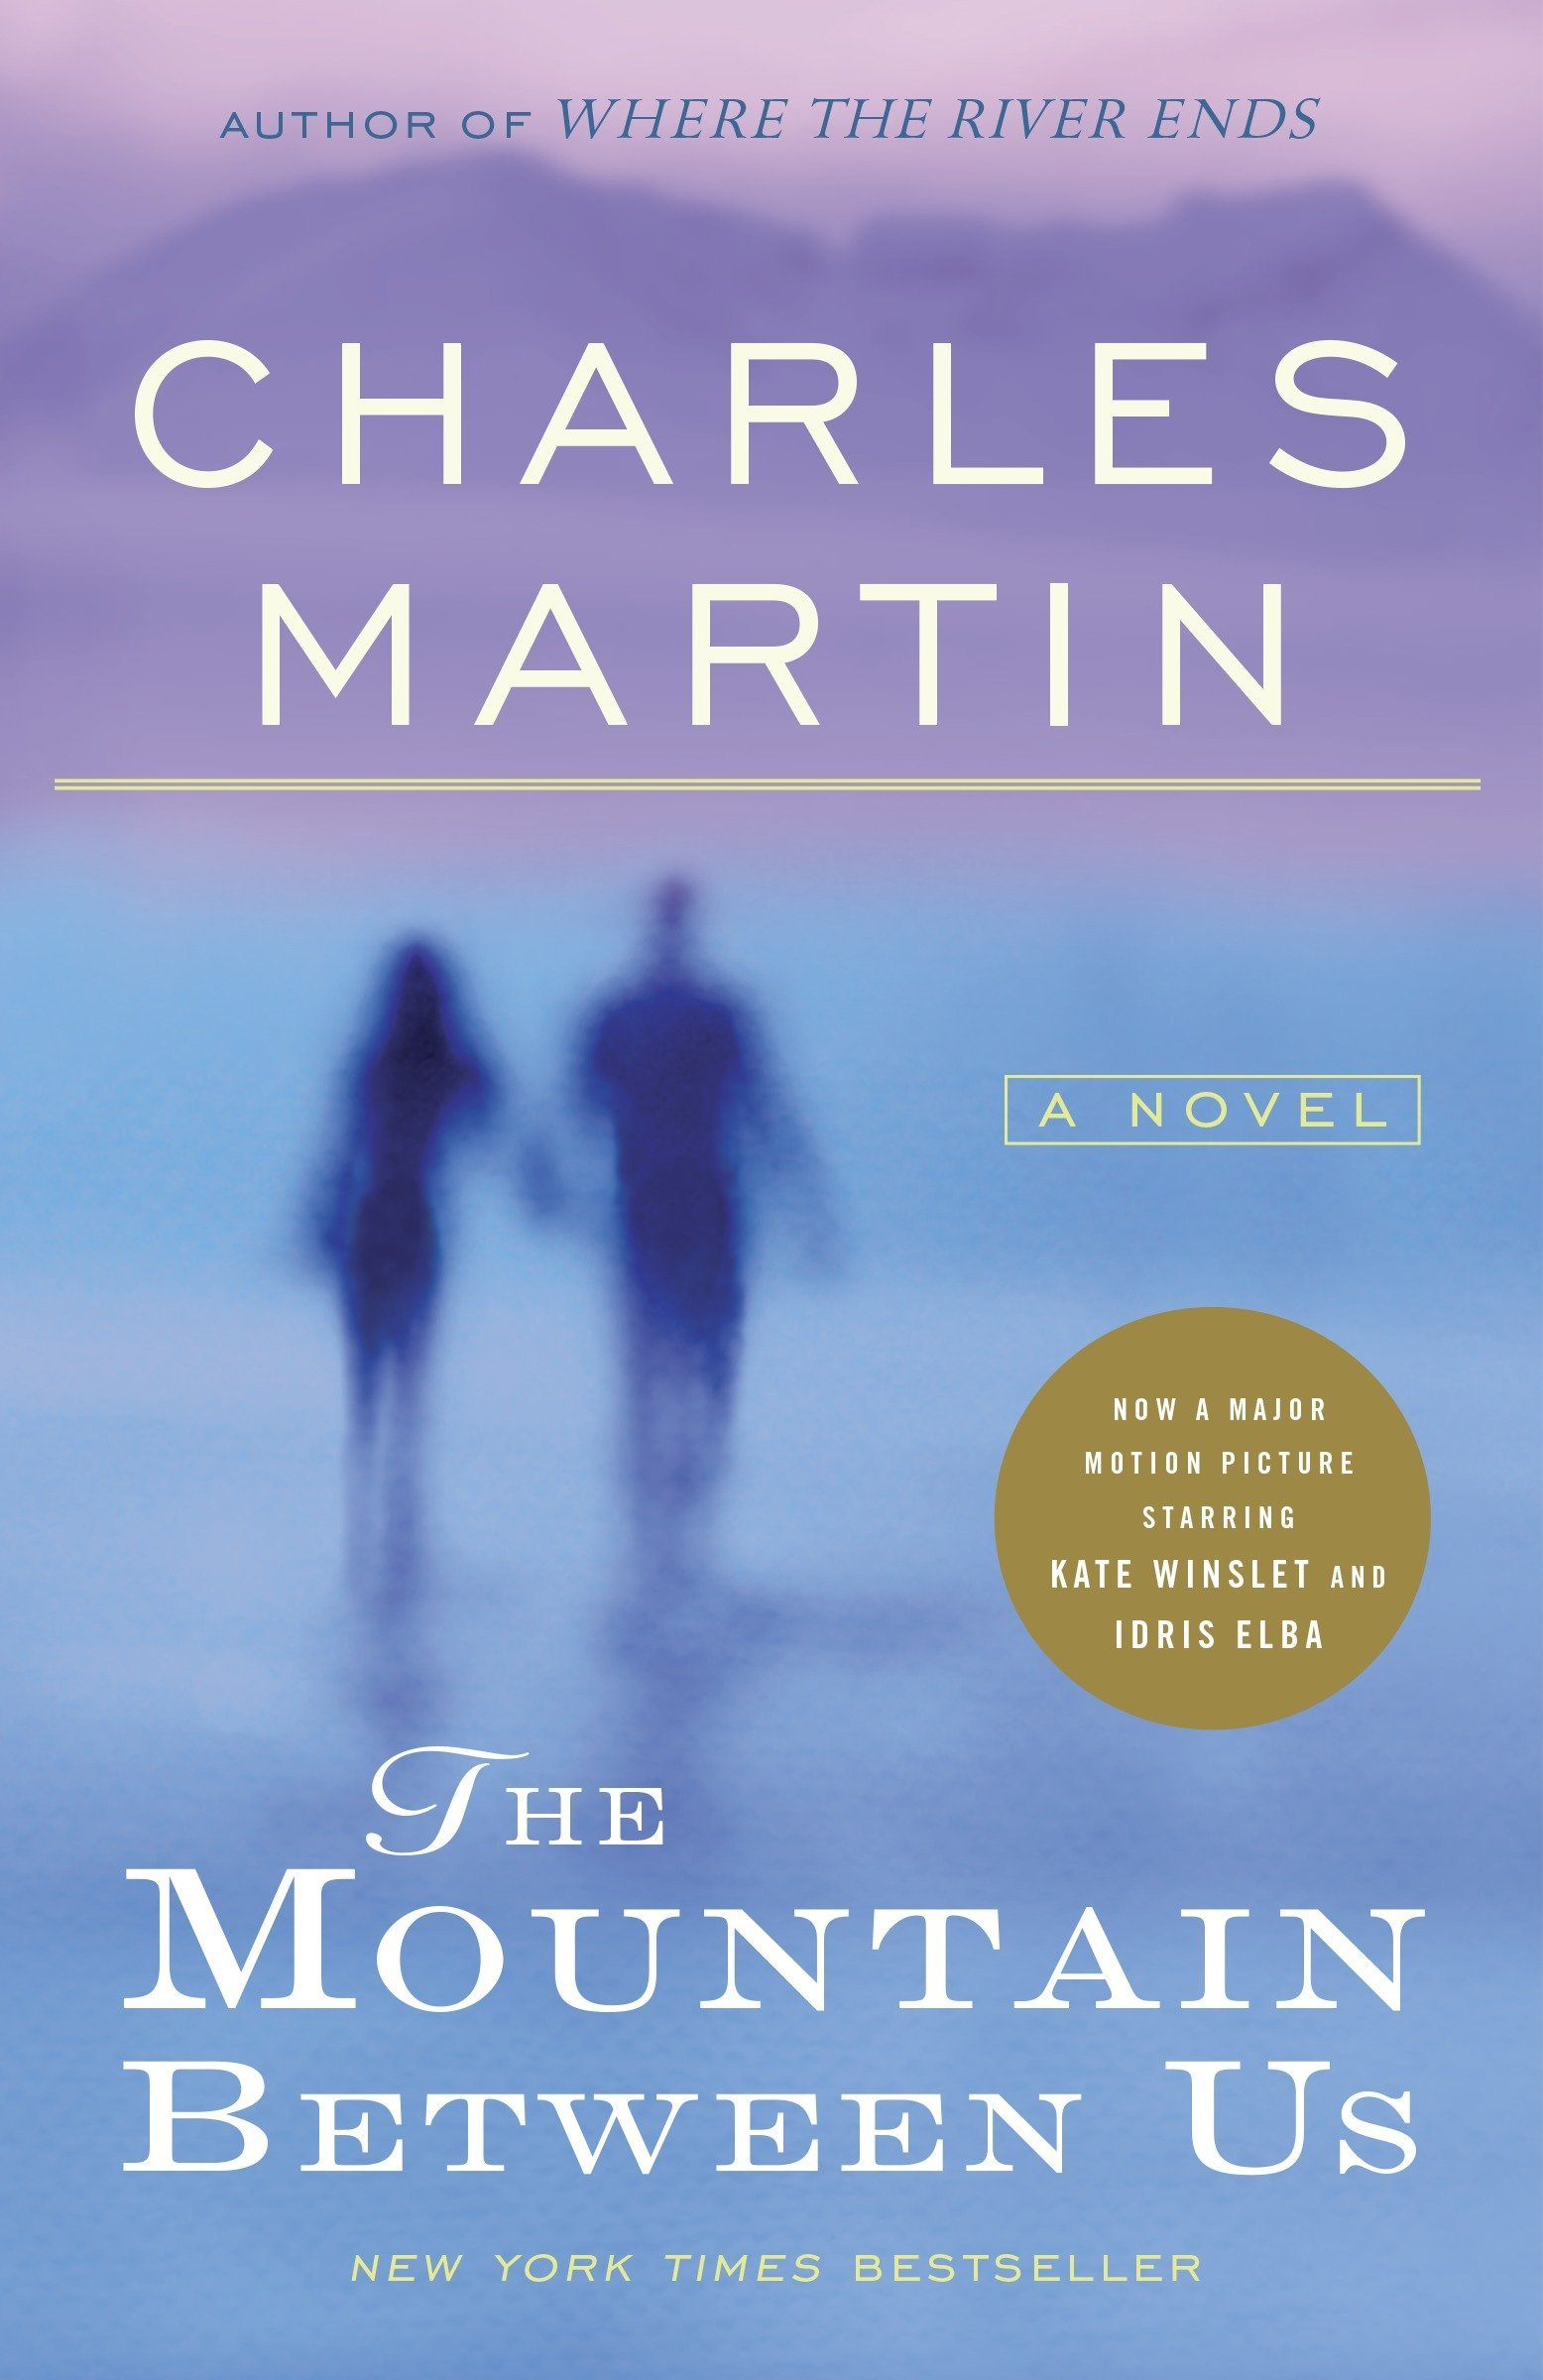 Amazon fr - The Mountain Between Us: A Novel - Charles